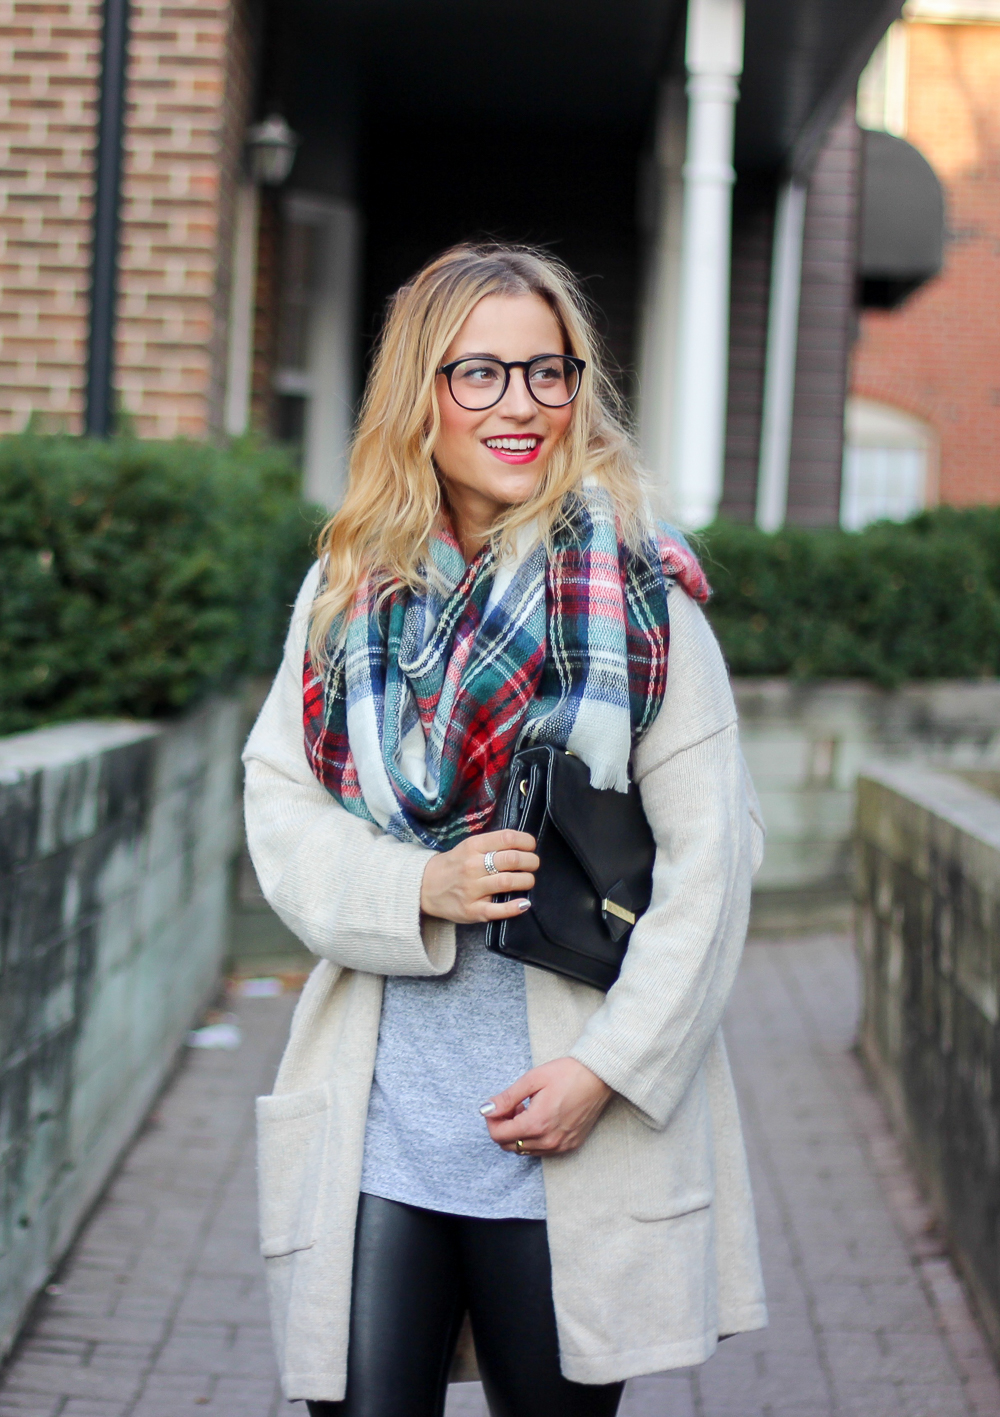 Jackie Goldhar is a Toronto-based fashion, beauty and lifestyle blogger, wearing a plaid blanket scarf and an oversized cardigan for the fall